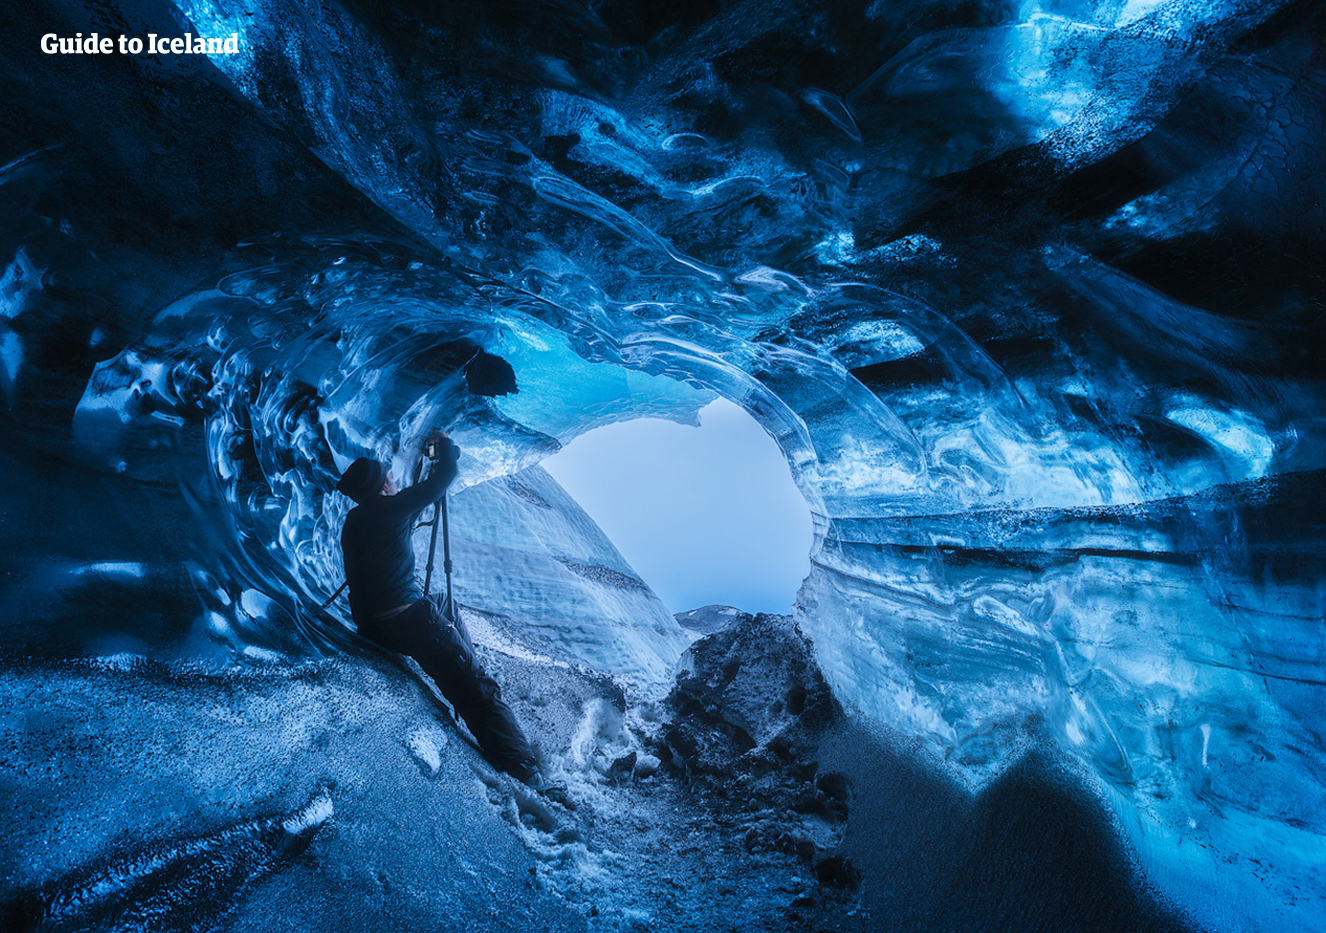 The different blues and hues of this ice cave are awe-inspiring.